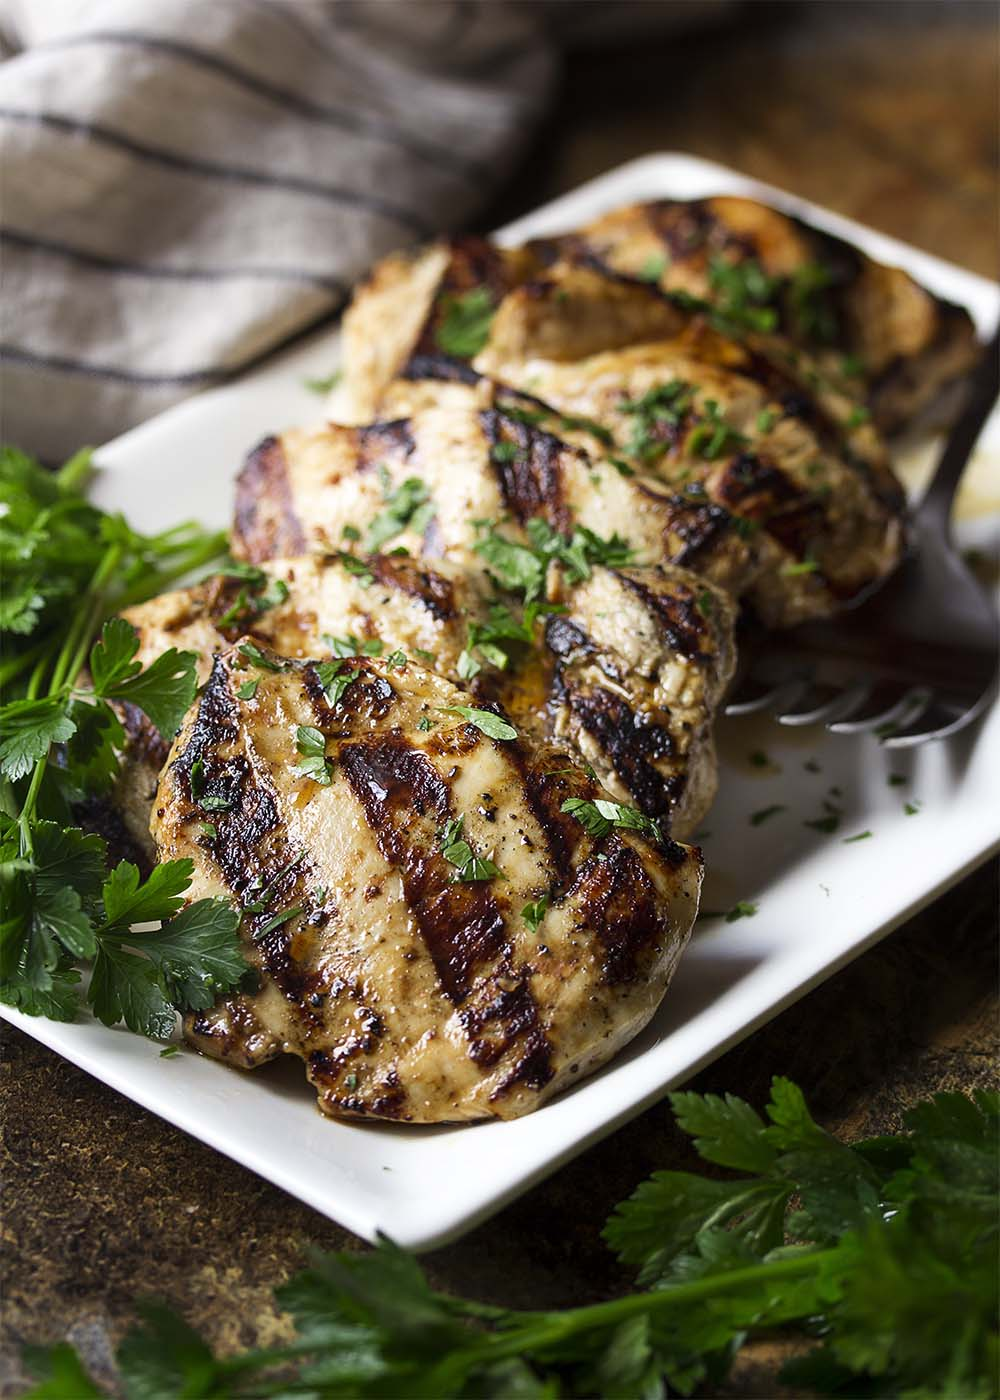 A platter of juicy and tender grilled balsamic chicken breast.